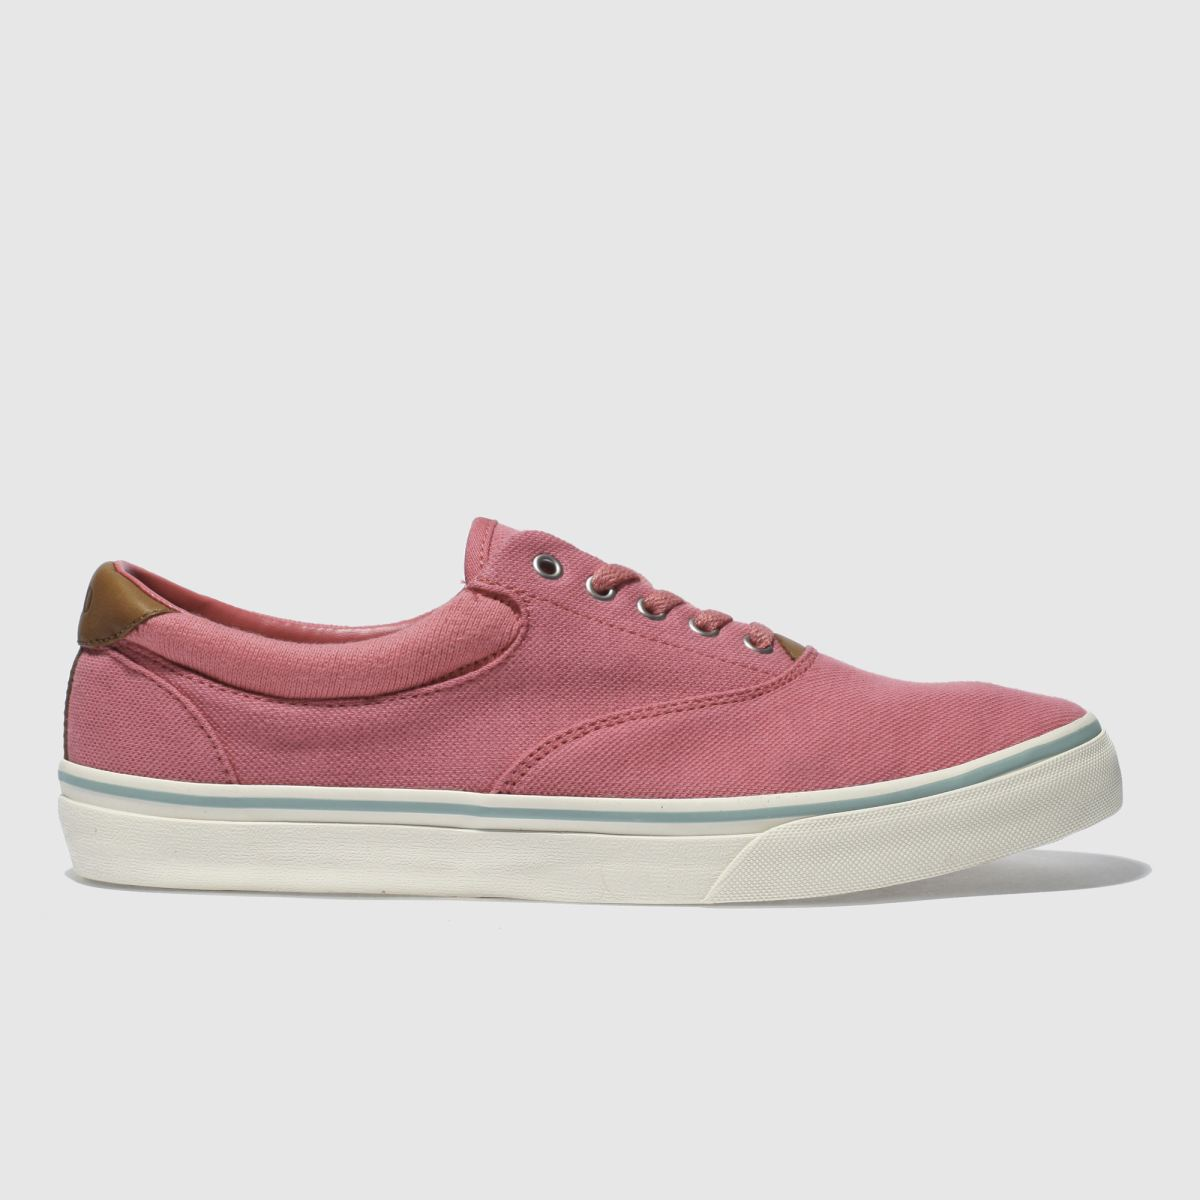 Polo Ralph Lauren Pink Thorton Ii Shoes